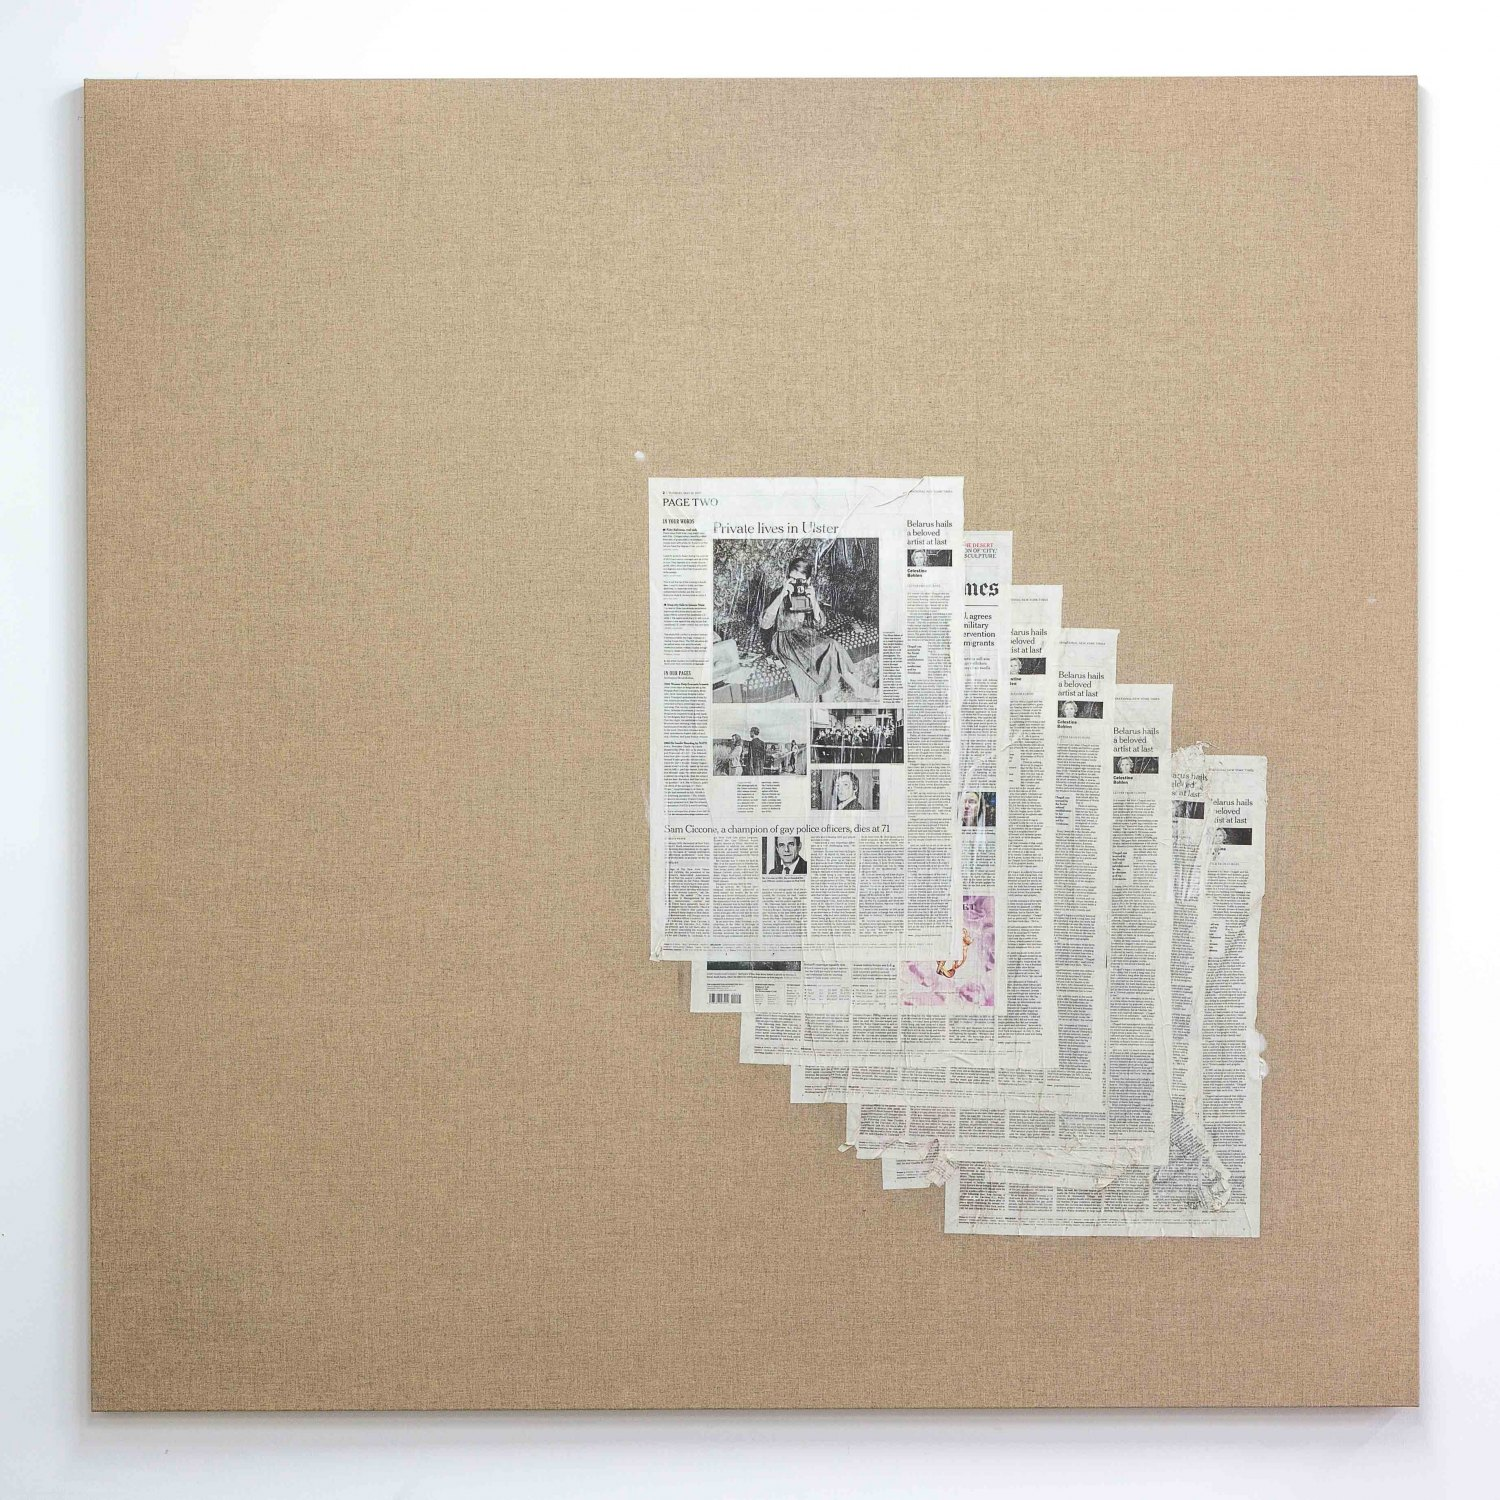 Matias Faldbakken Untitled (Canvas #106), 2015 Newspaper print on Belgian linen, wooden stretcher, 152.5 × 152.5 × 3.2 cm